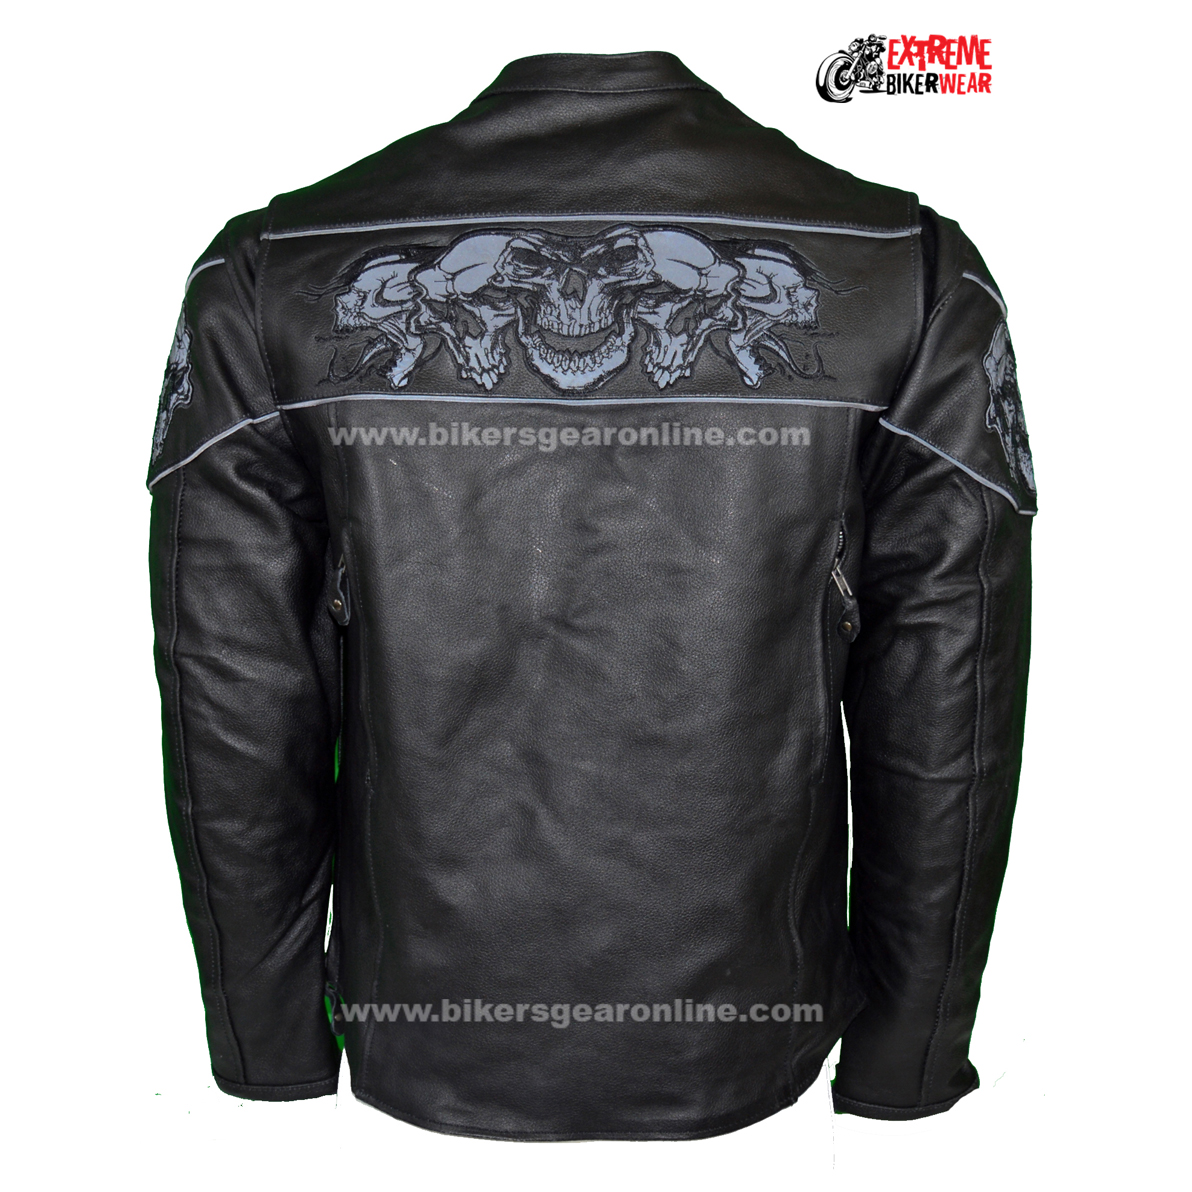 Leather jackets with skulls